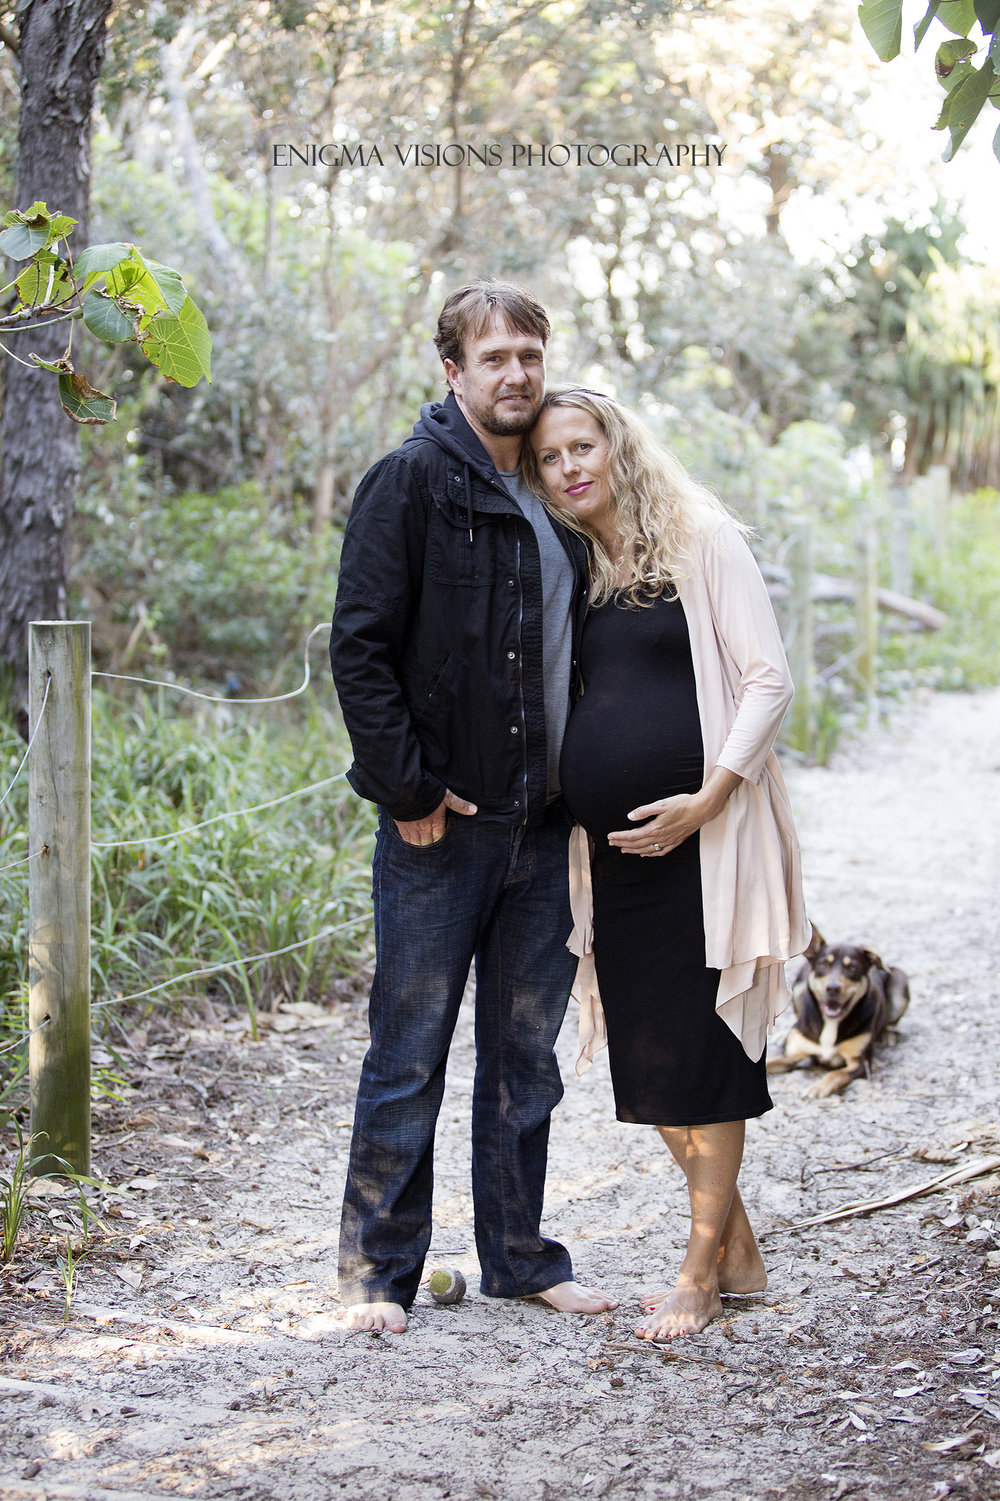 enigma_visions_photography_maternity_melandandrew_kingscliff (1).jpg